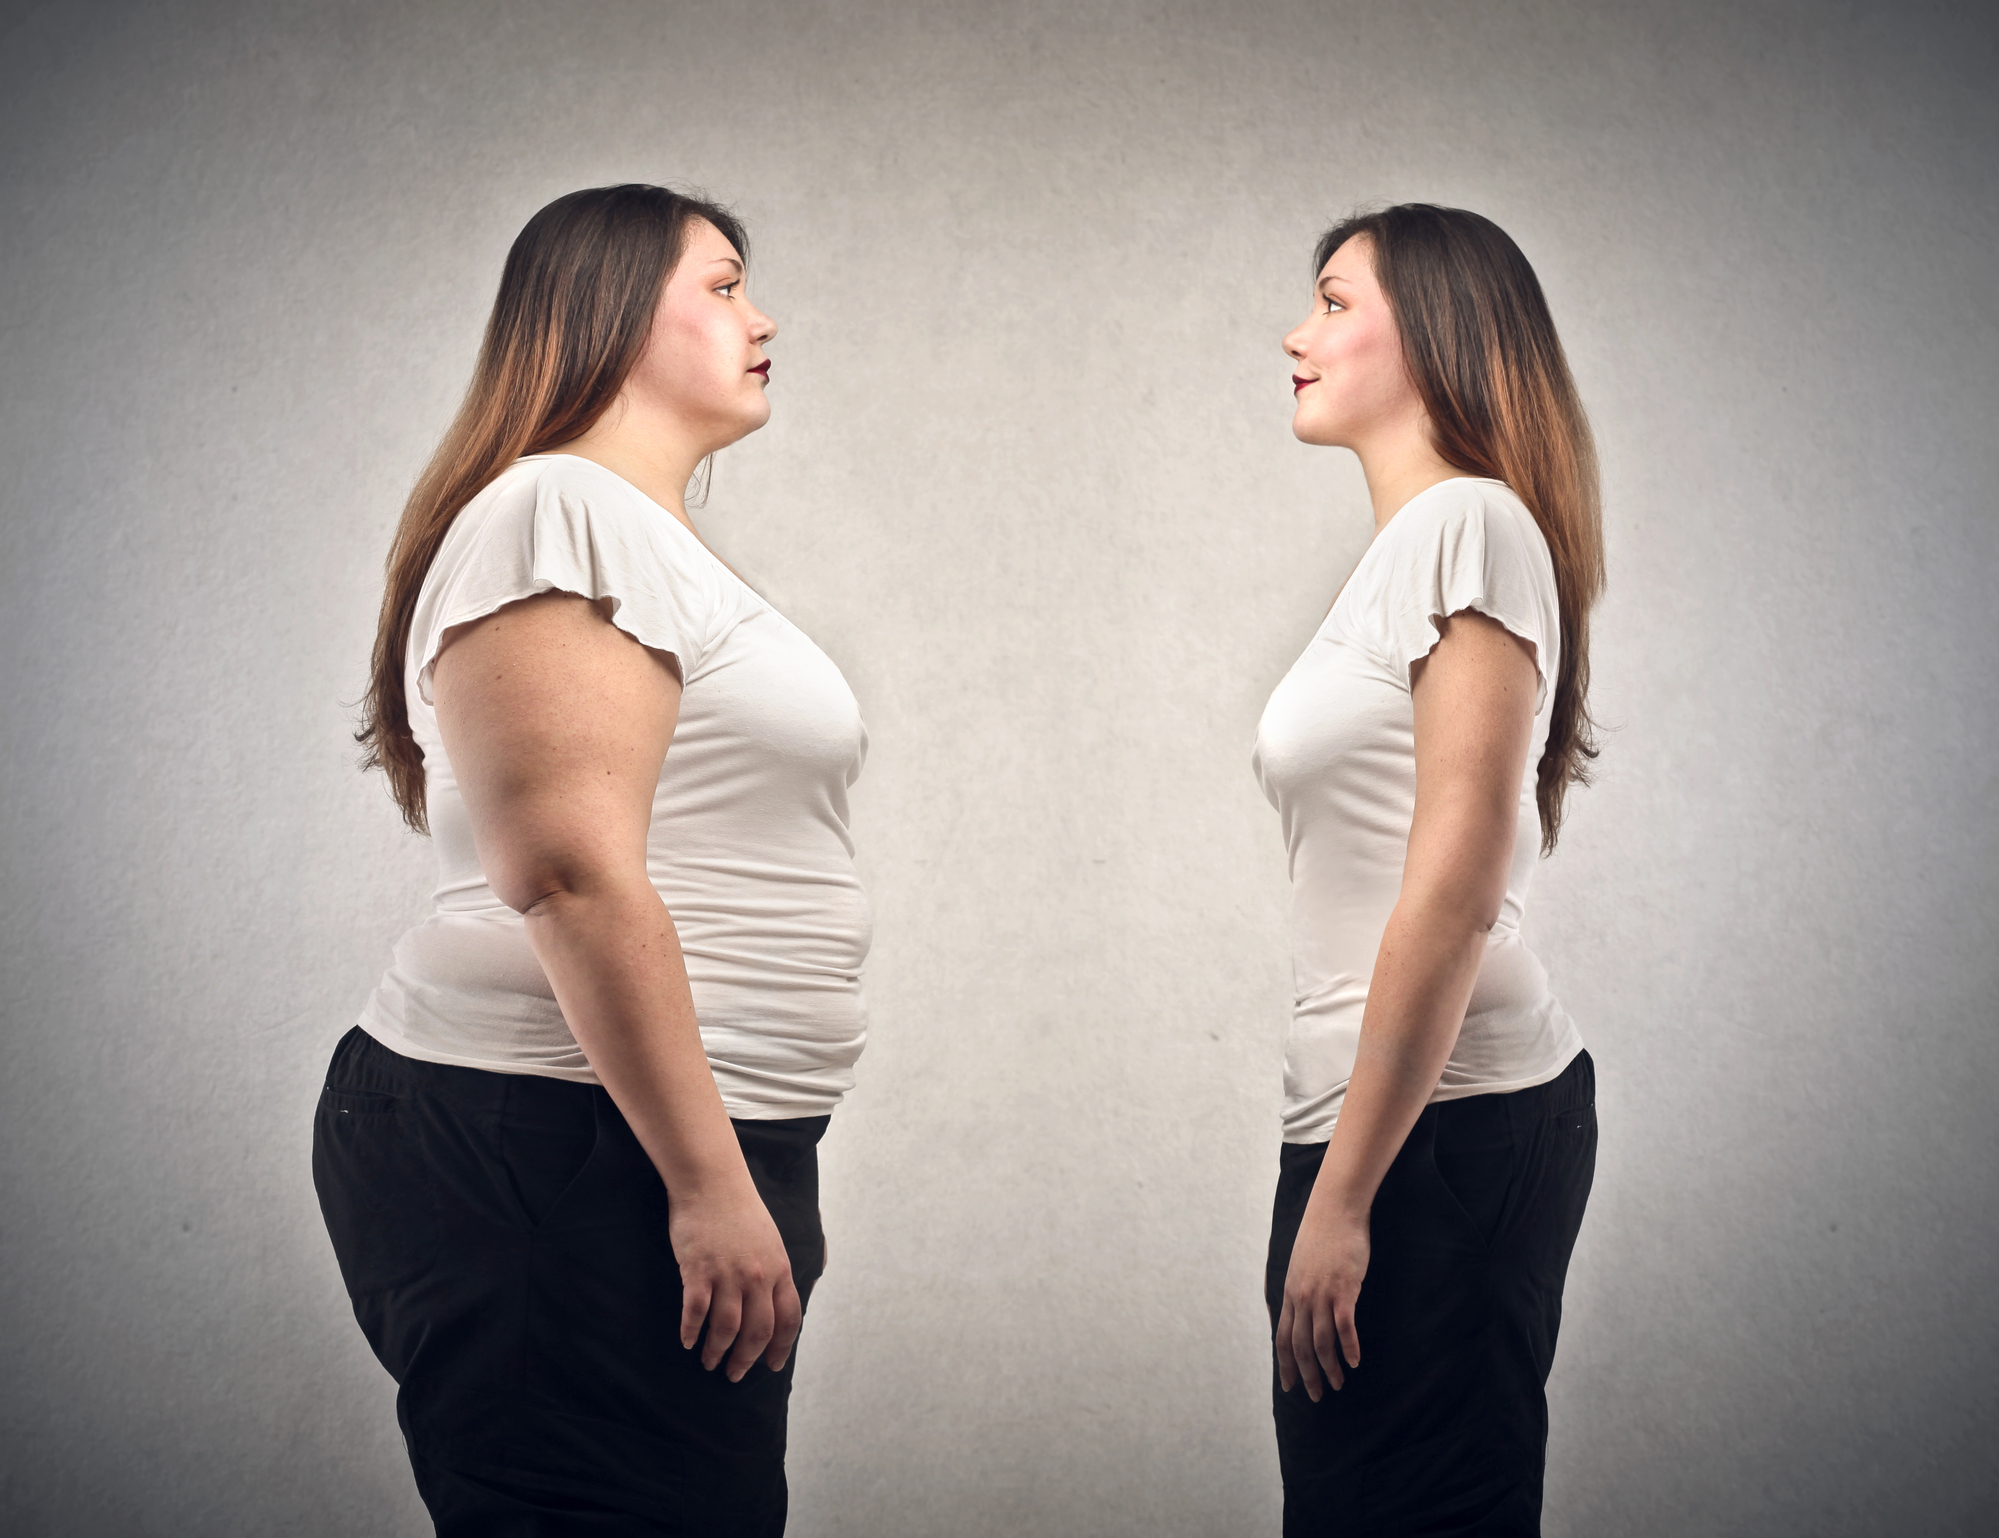 New research found individuals not responding well to weight loss interventions had specific microbiome differences compared to those who effectively lost weight